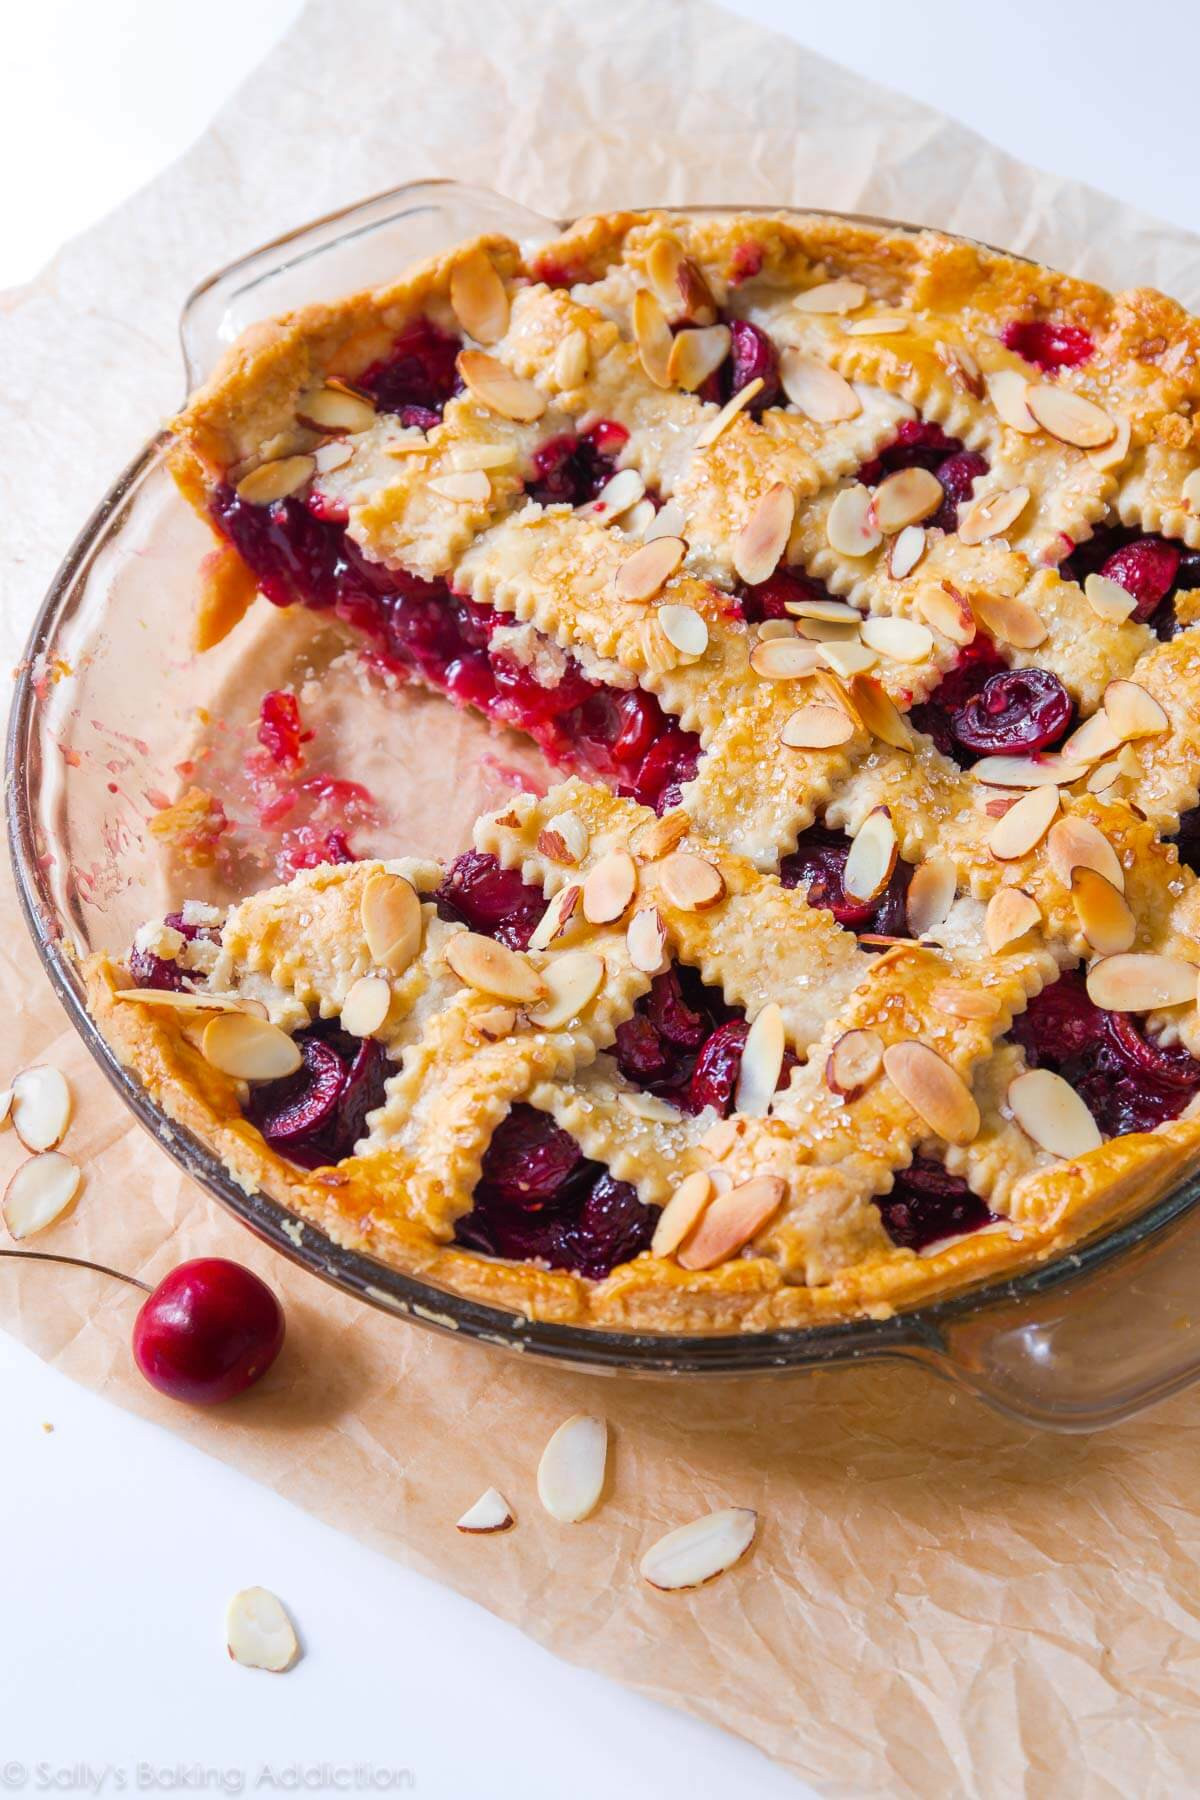 Cherry Pie Recipes  Sweet Cherry Pie with Toasted Almonds Sallys Baking